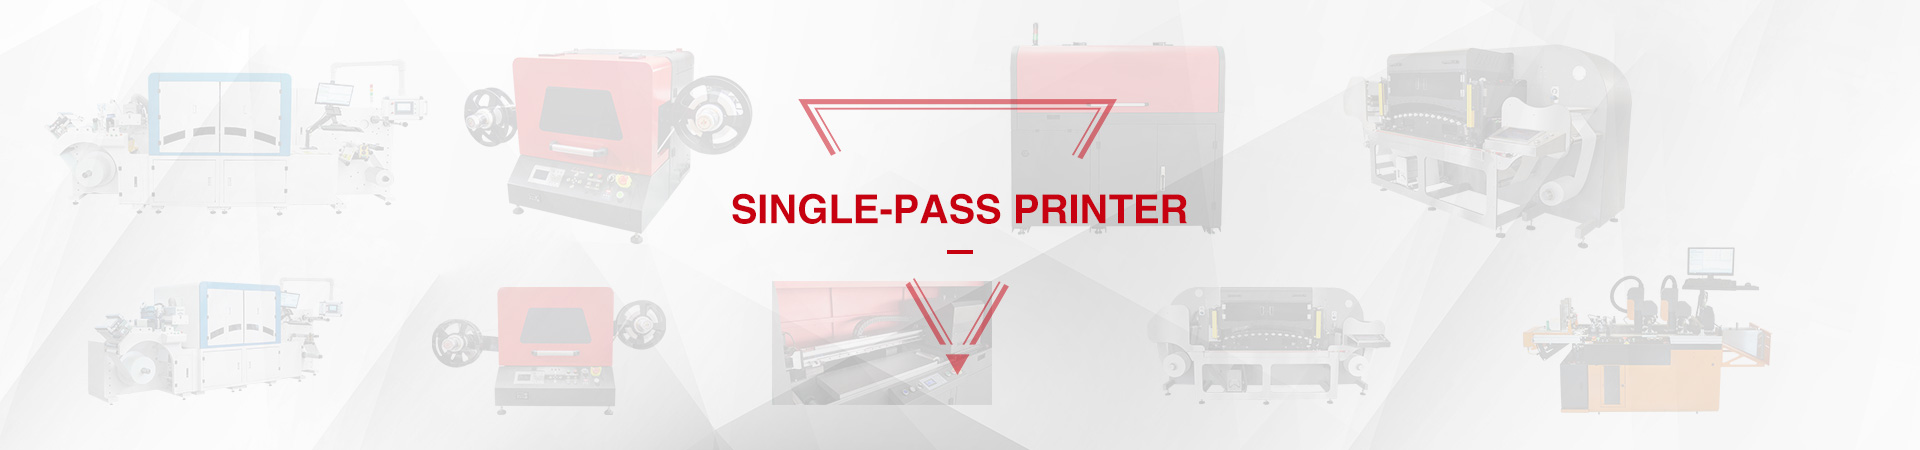 Single-pass Printer